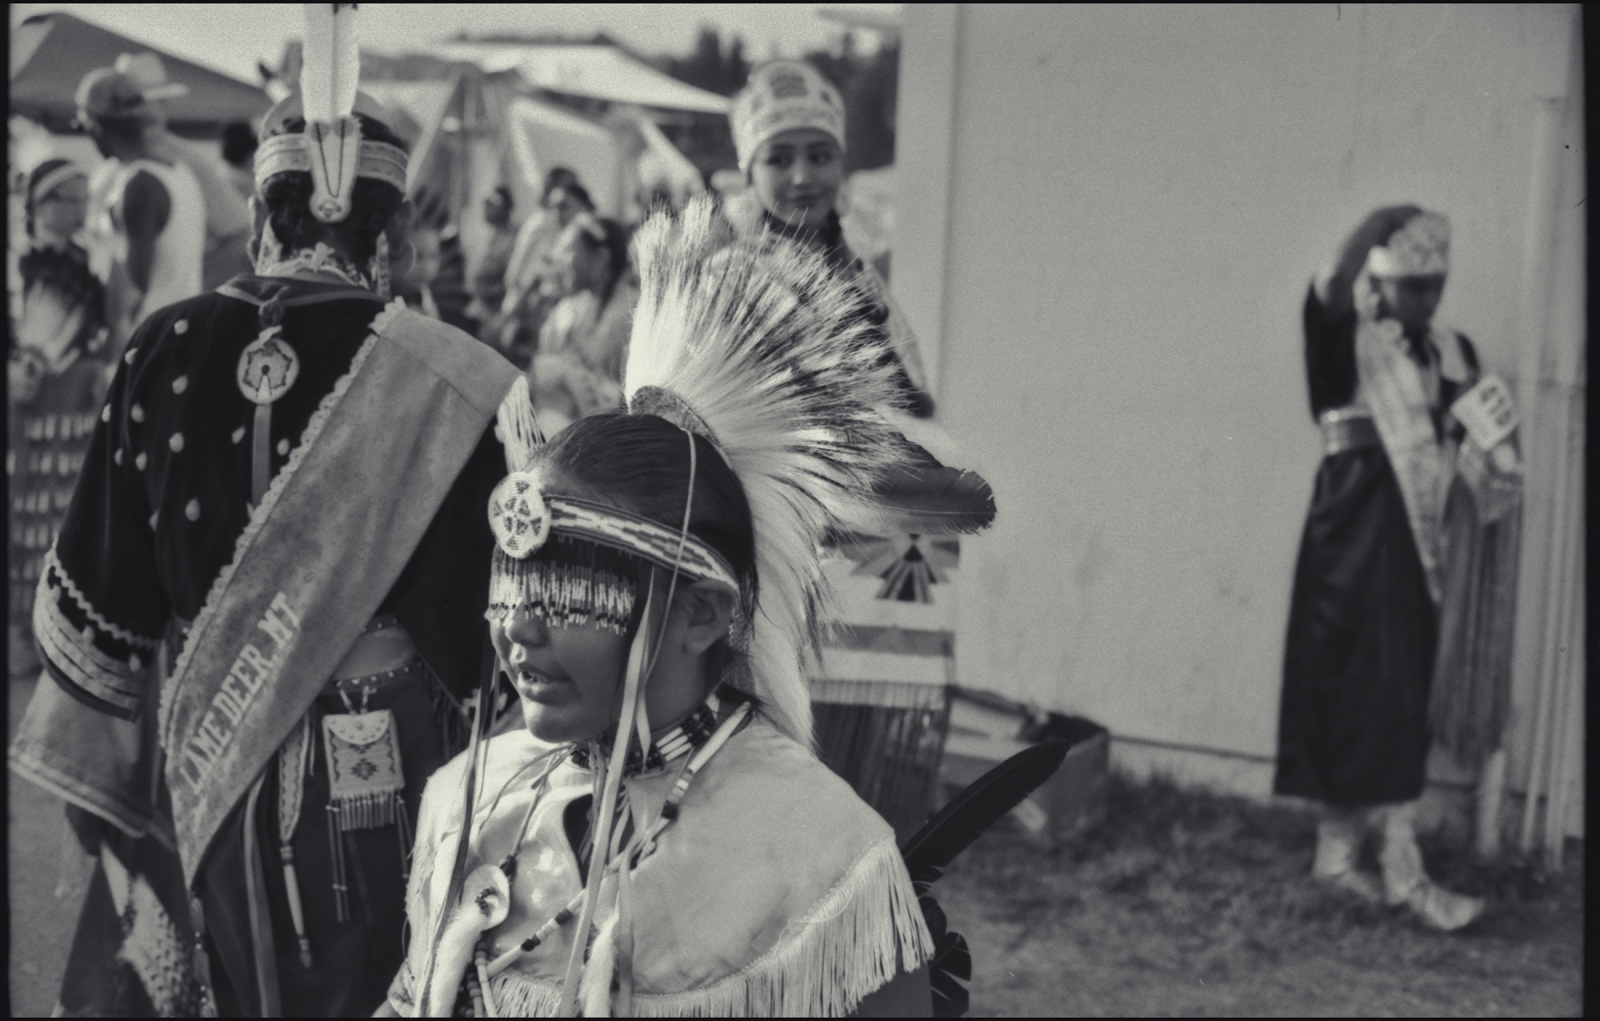 Prior to grand entry for annual pow wow. Northern Cheyenne Nation at Lame Deer, MT. 2015.